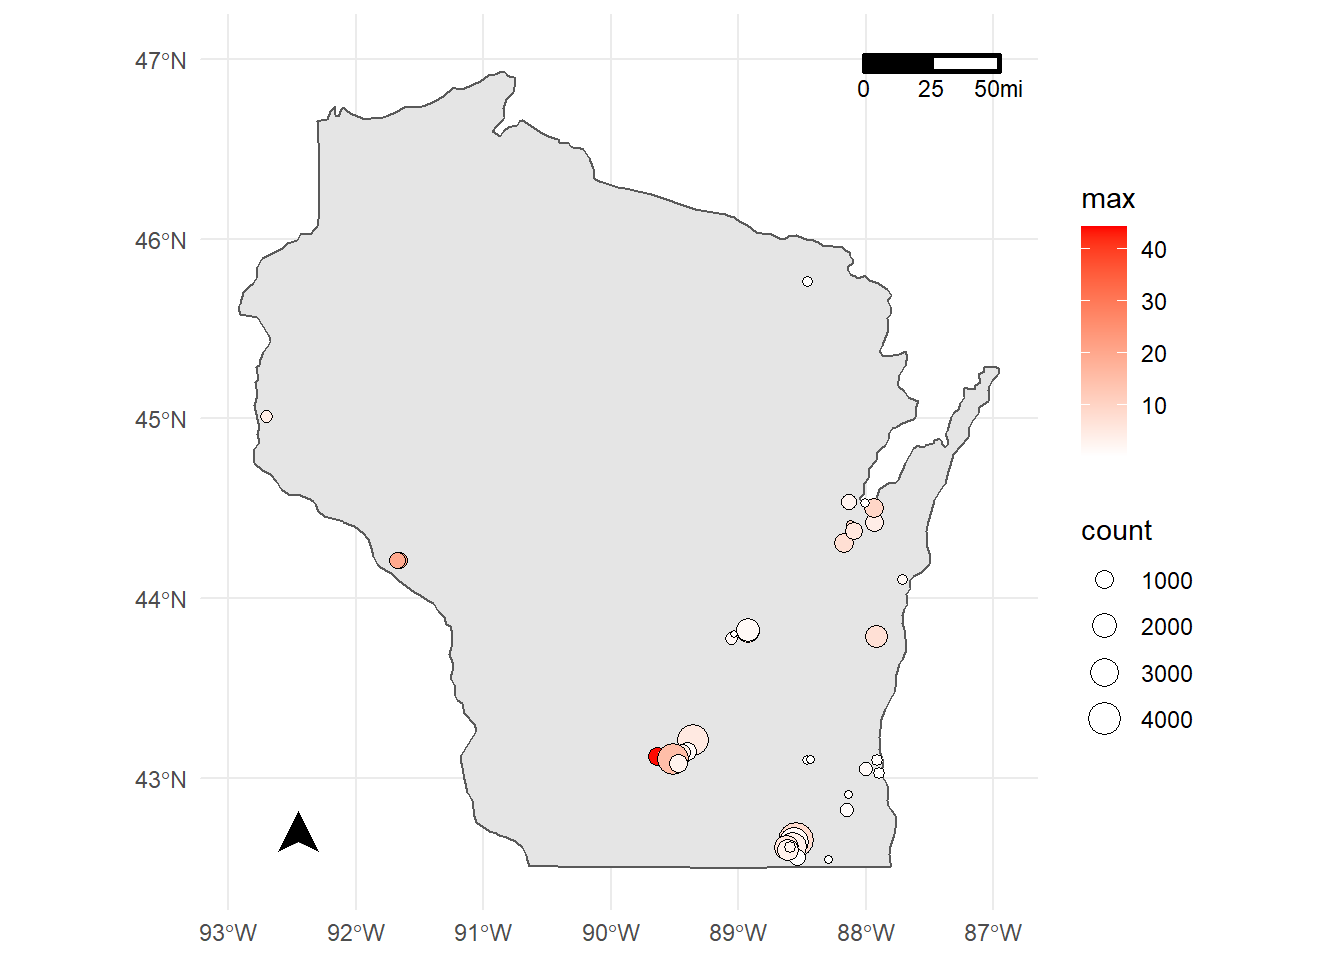 Static map of Wisconsin with dots representing locations of phosphorus measurements.